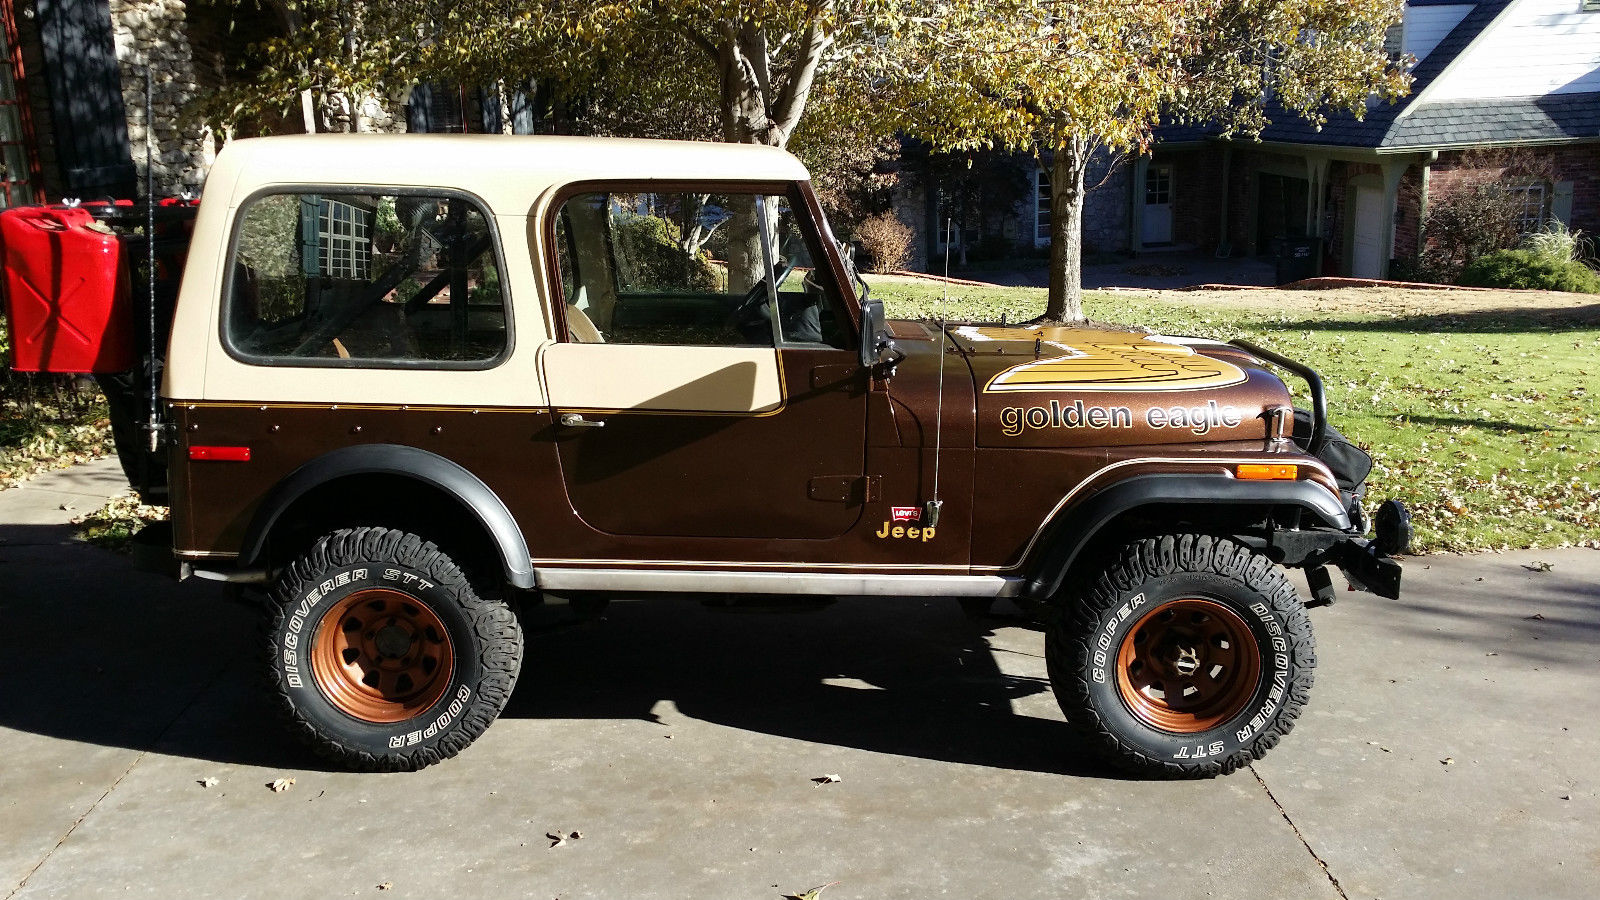 Cj7 Jeep For Sale >> 1979 Jeep CJ7 Golden Eagle 304 V8 4 Speed Levi Package Winch Tow Bar Rear Rack